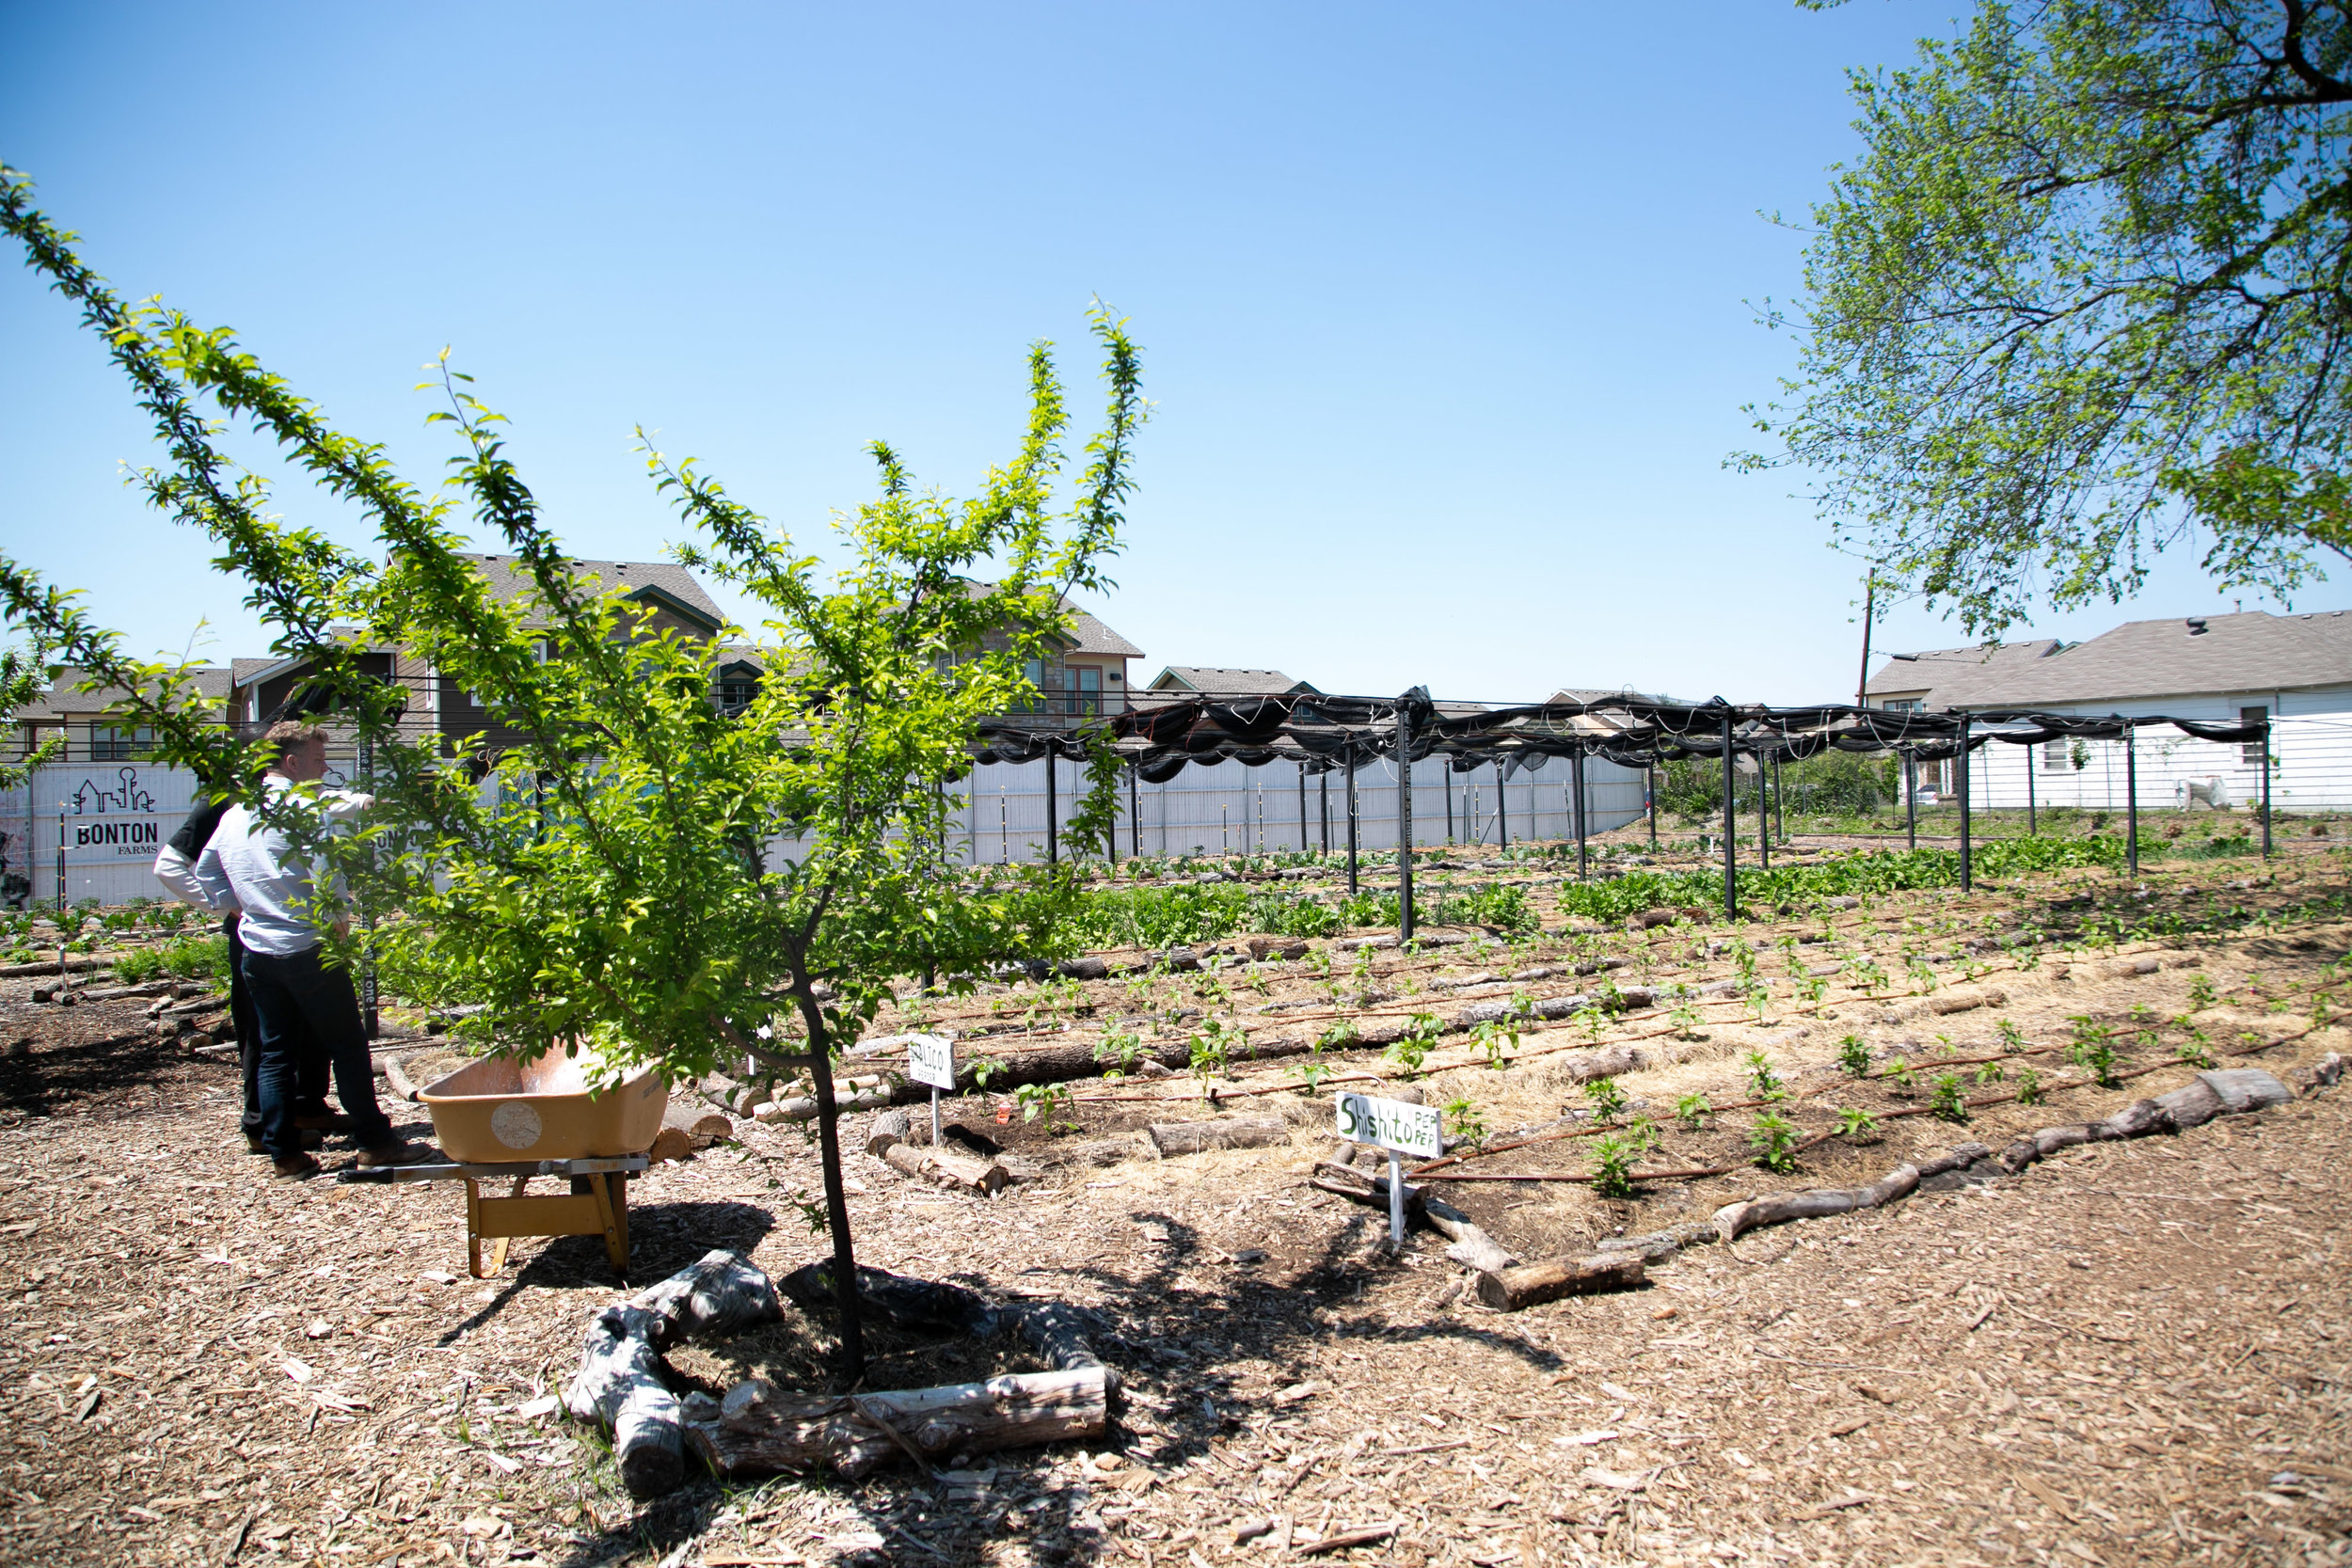 What began as a small project in Daron's garden grew into what the city of Dallas now knows and loves as Bonton Farms.